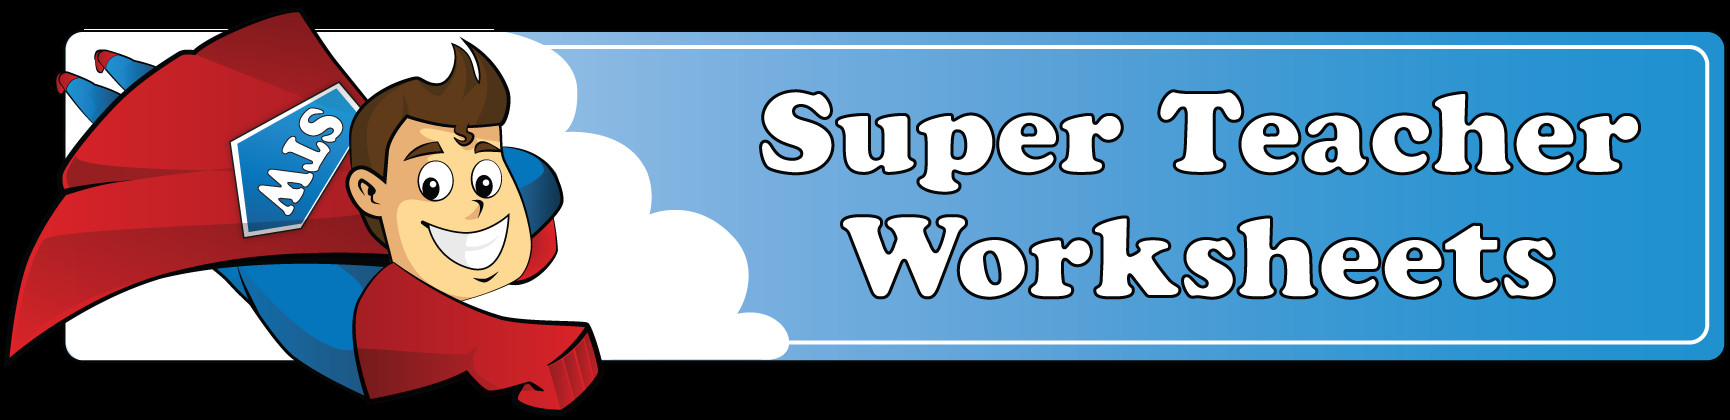 Super Teacher Worksheets.com